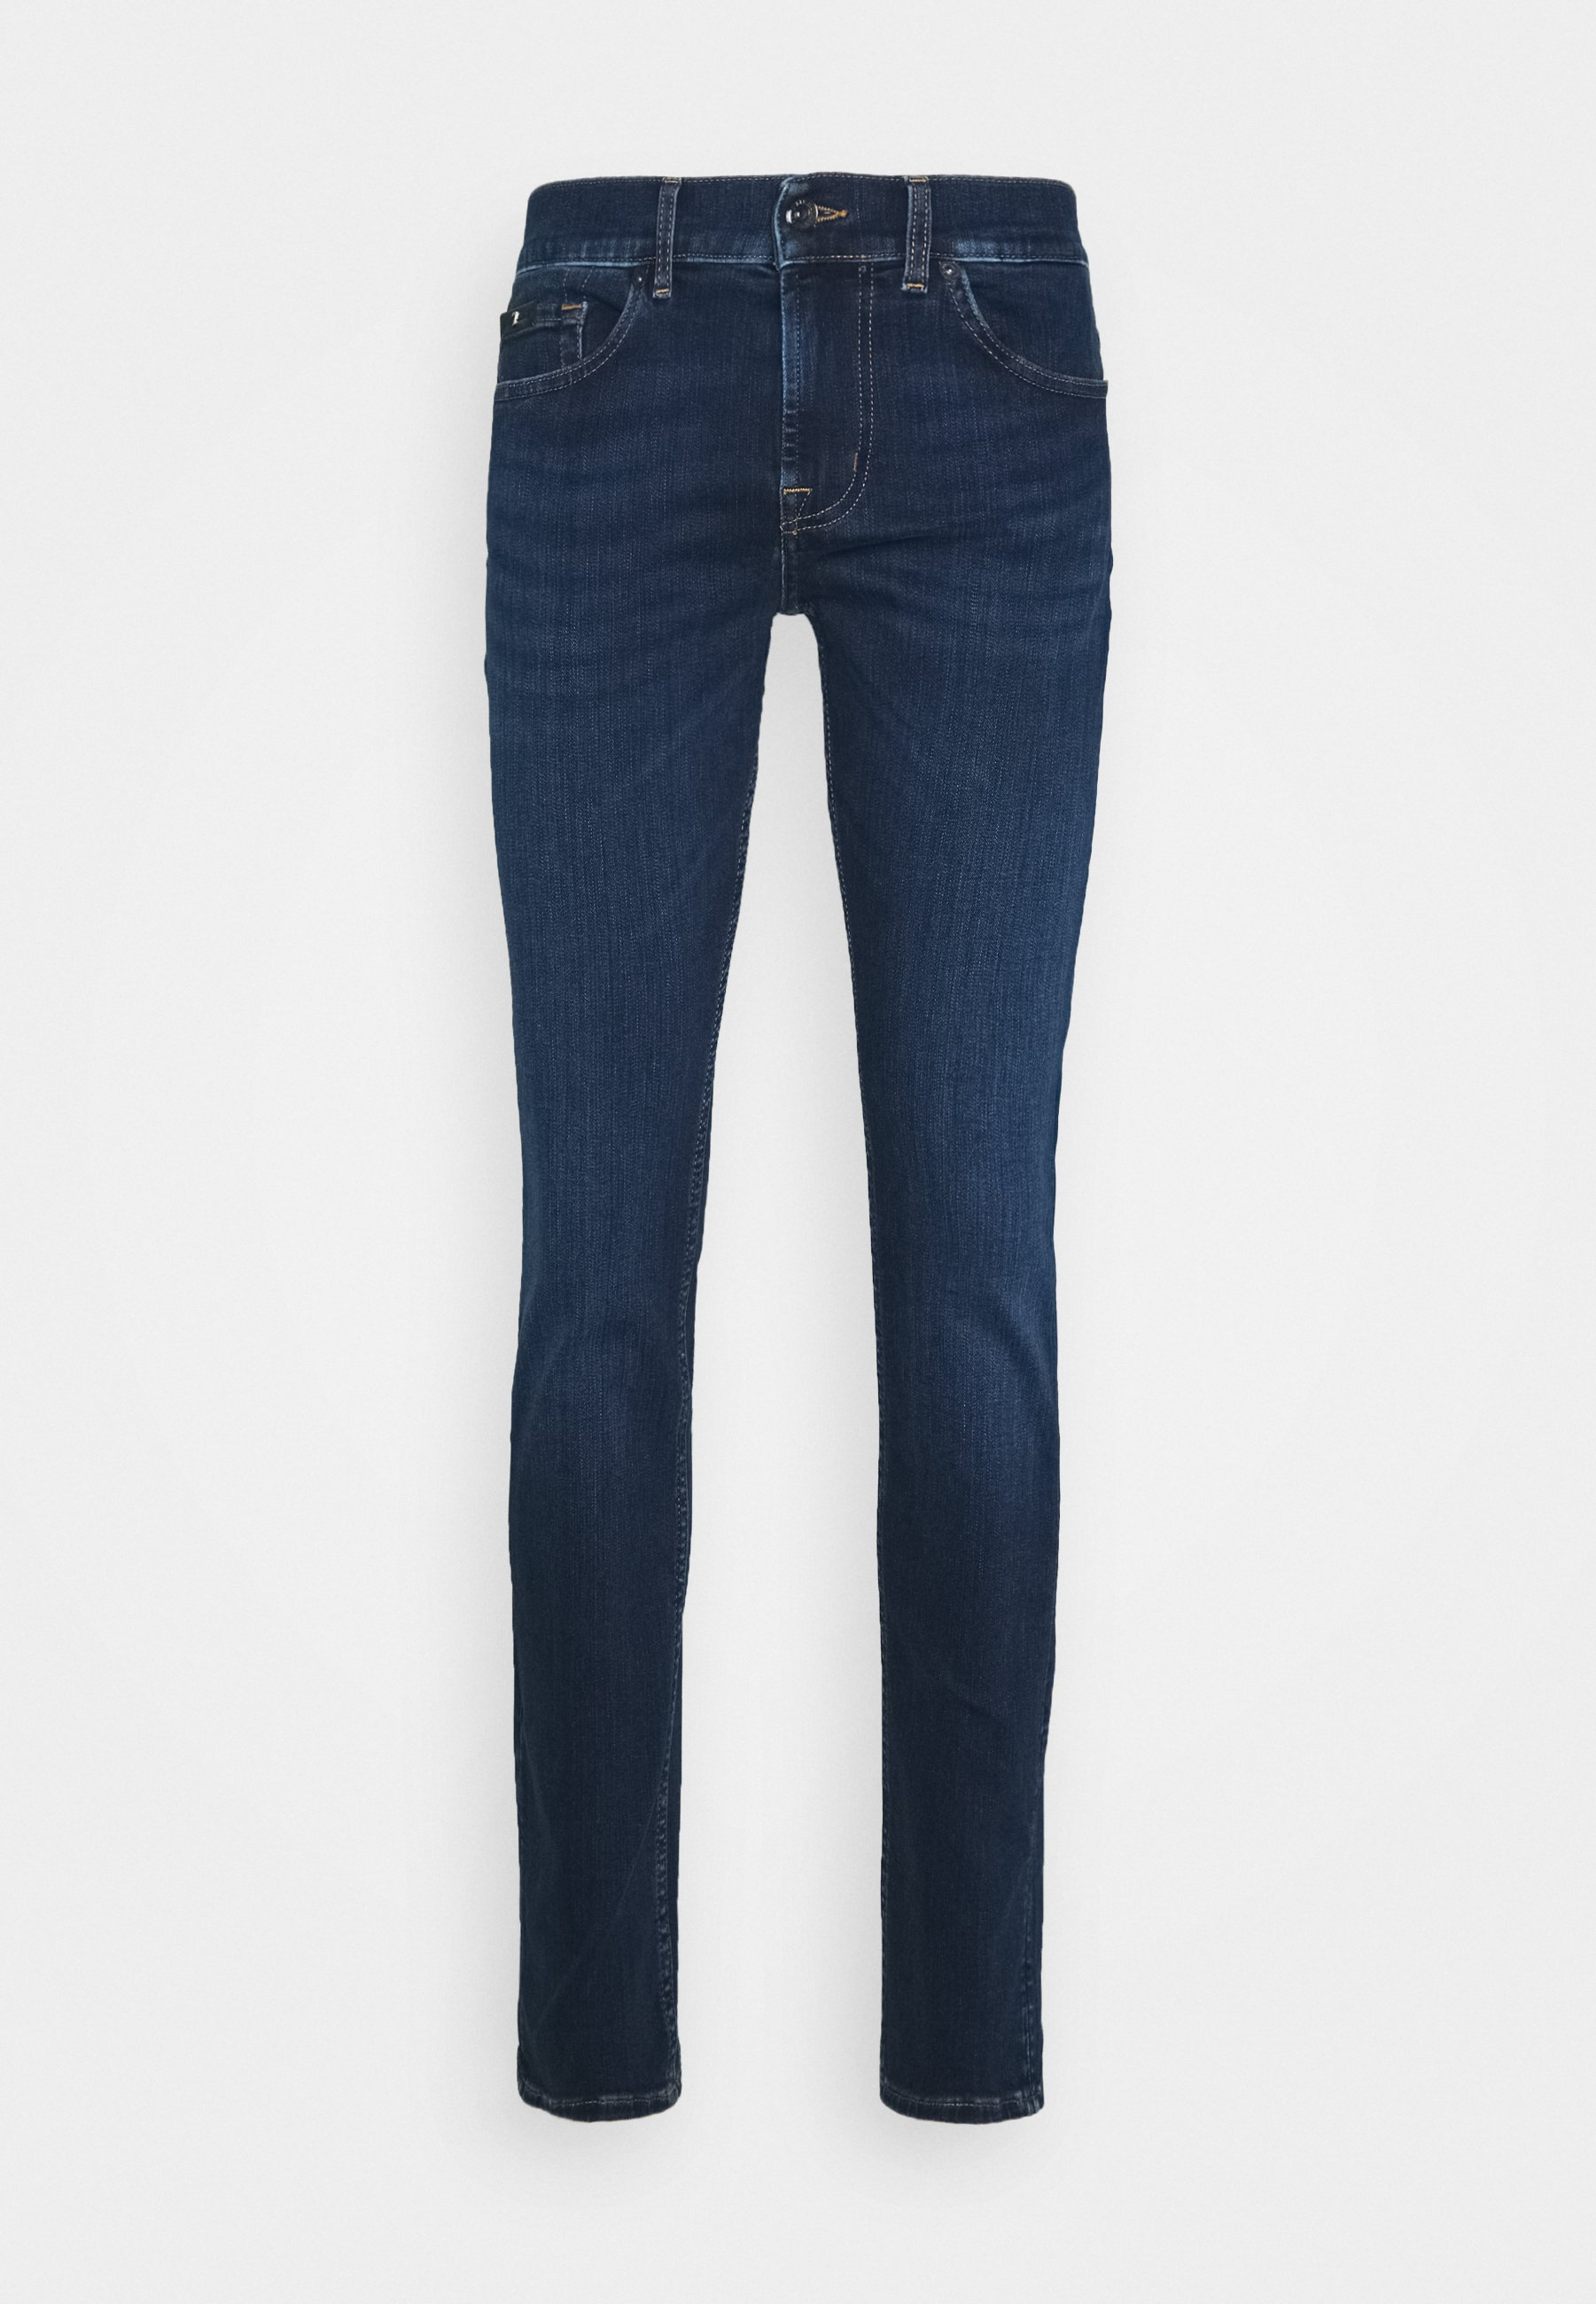 7 For All Mankind Ronnie Special Edition Uniform - Jeans Slim Fit Dark Blue